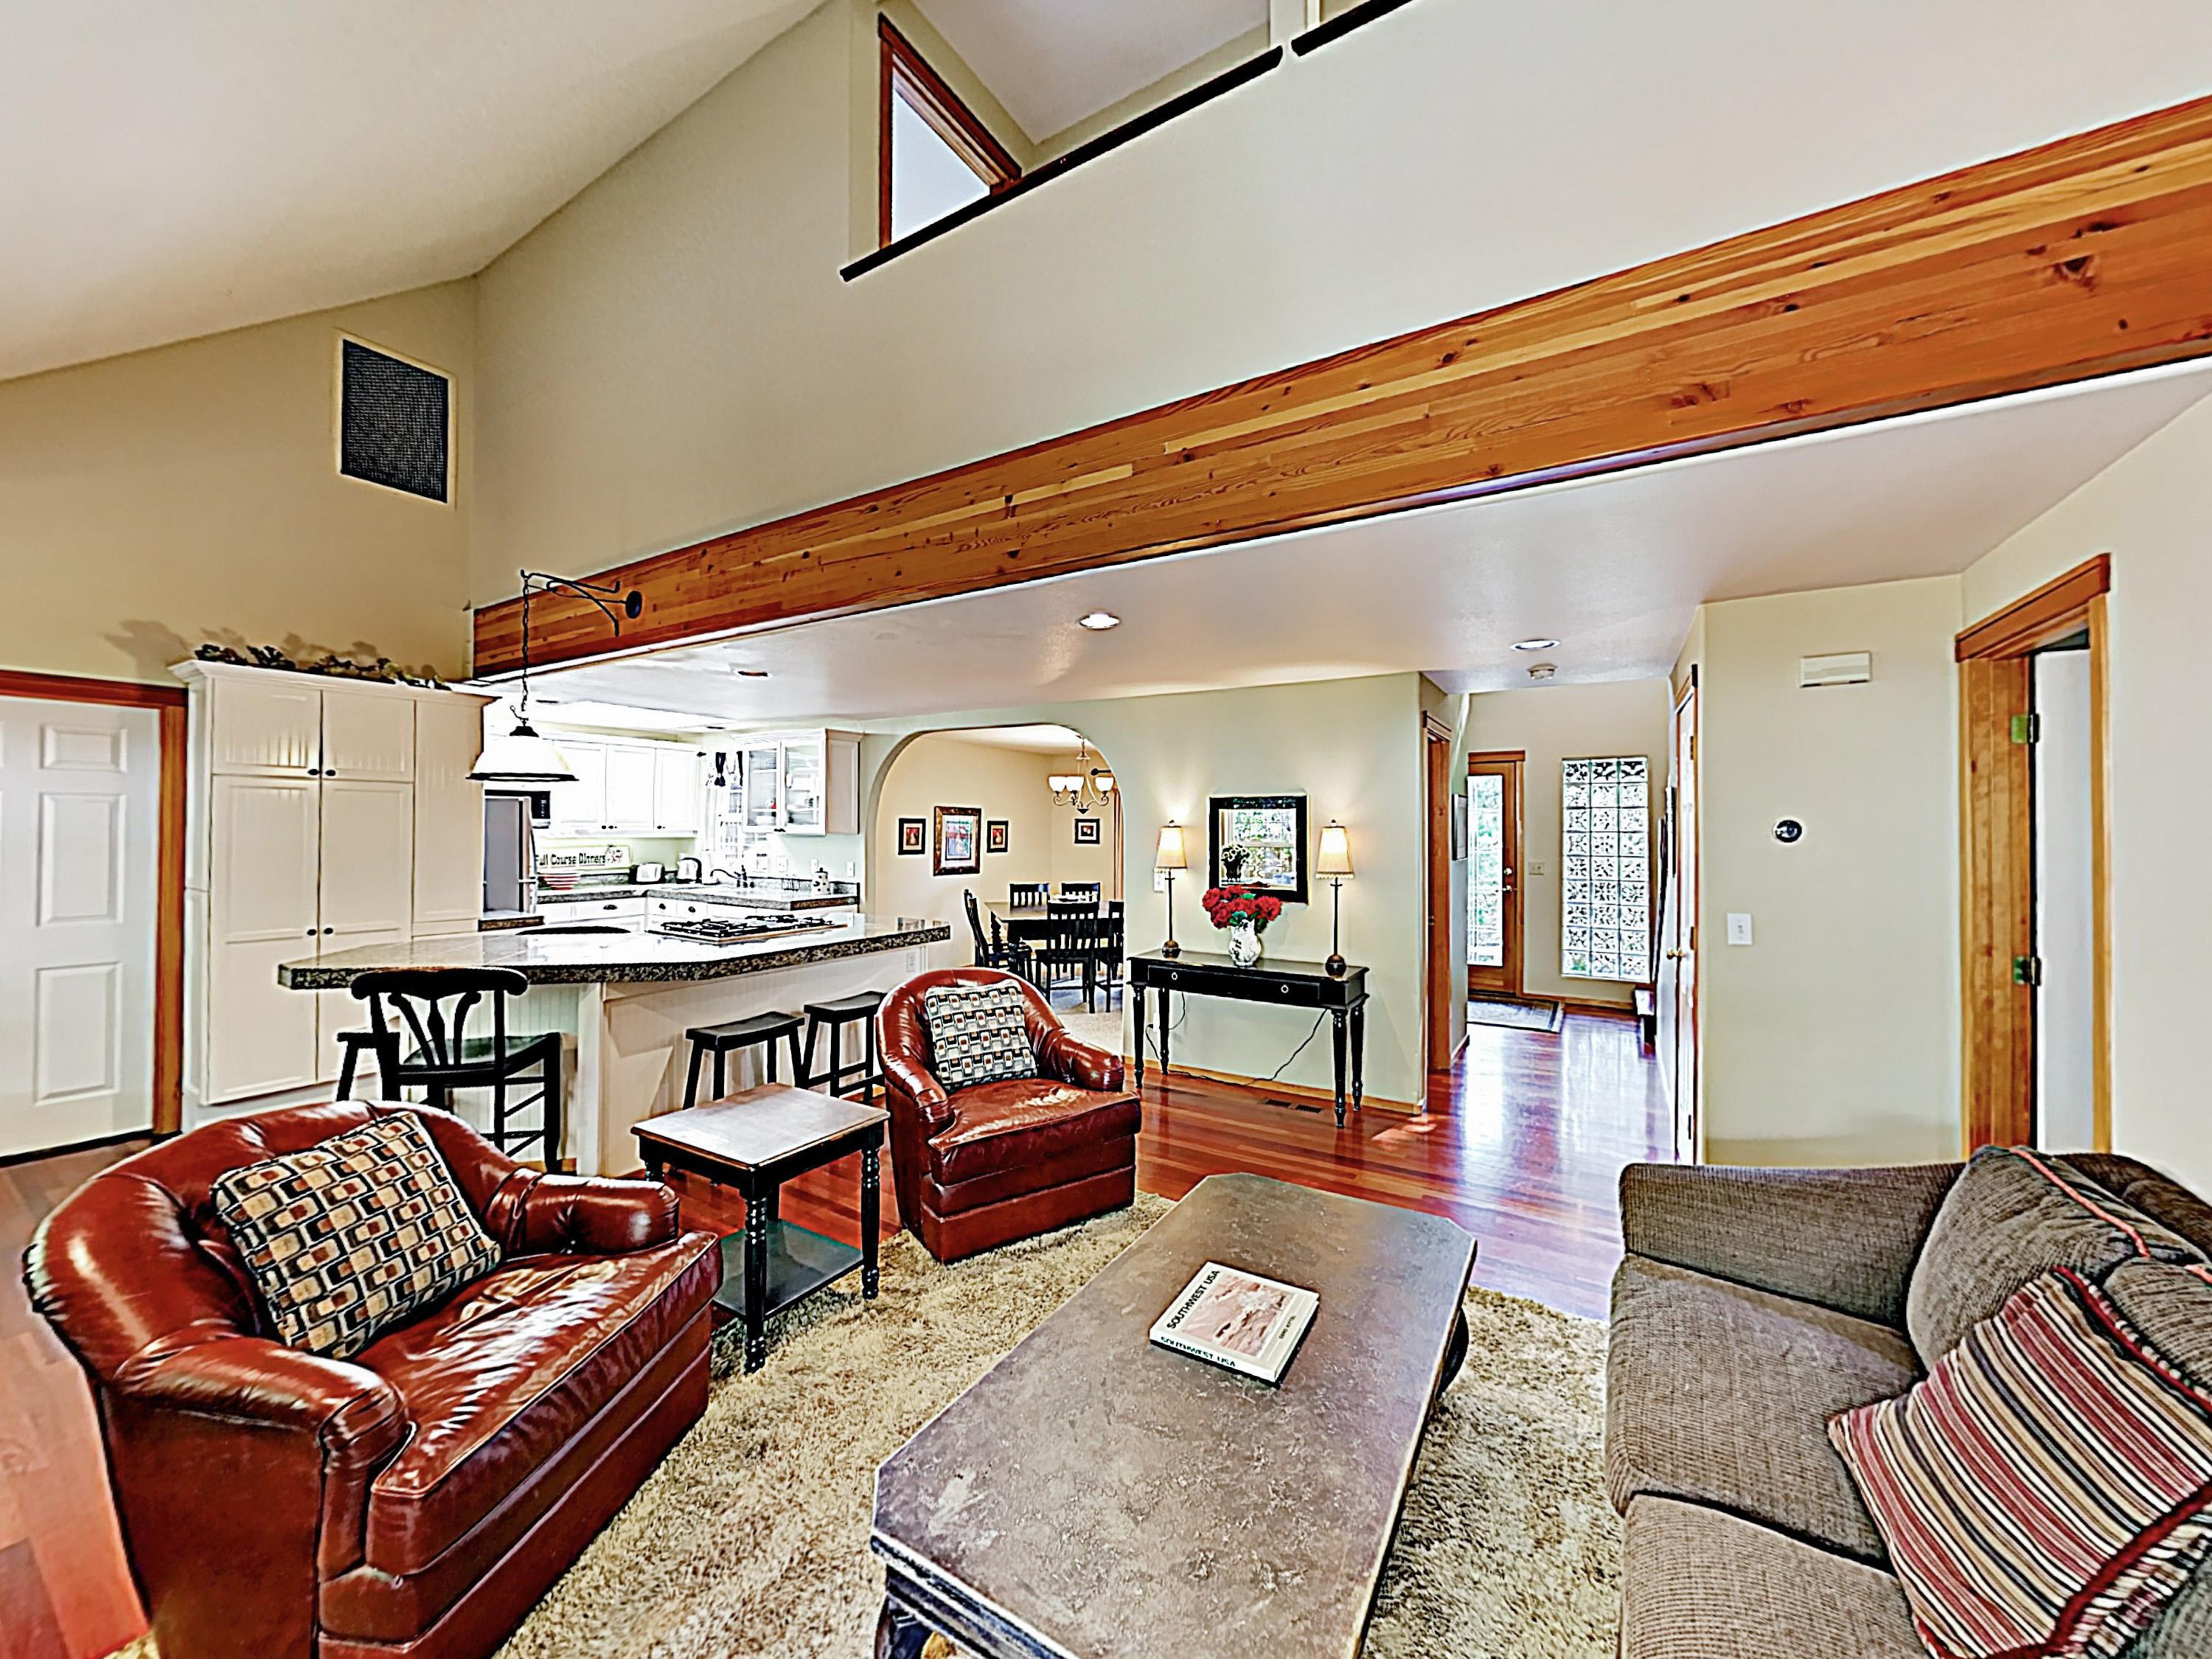 Welcome to Bend! This home is professionally managed by TurnKey Vacation Rentals.